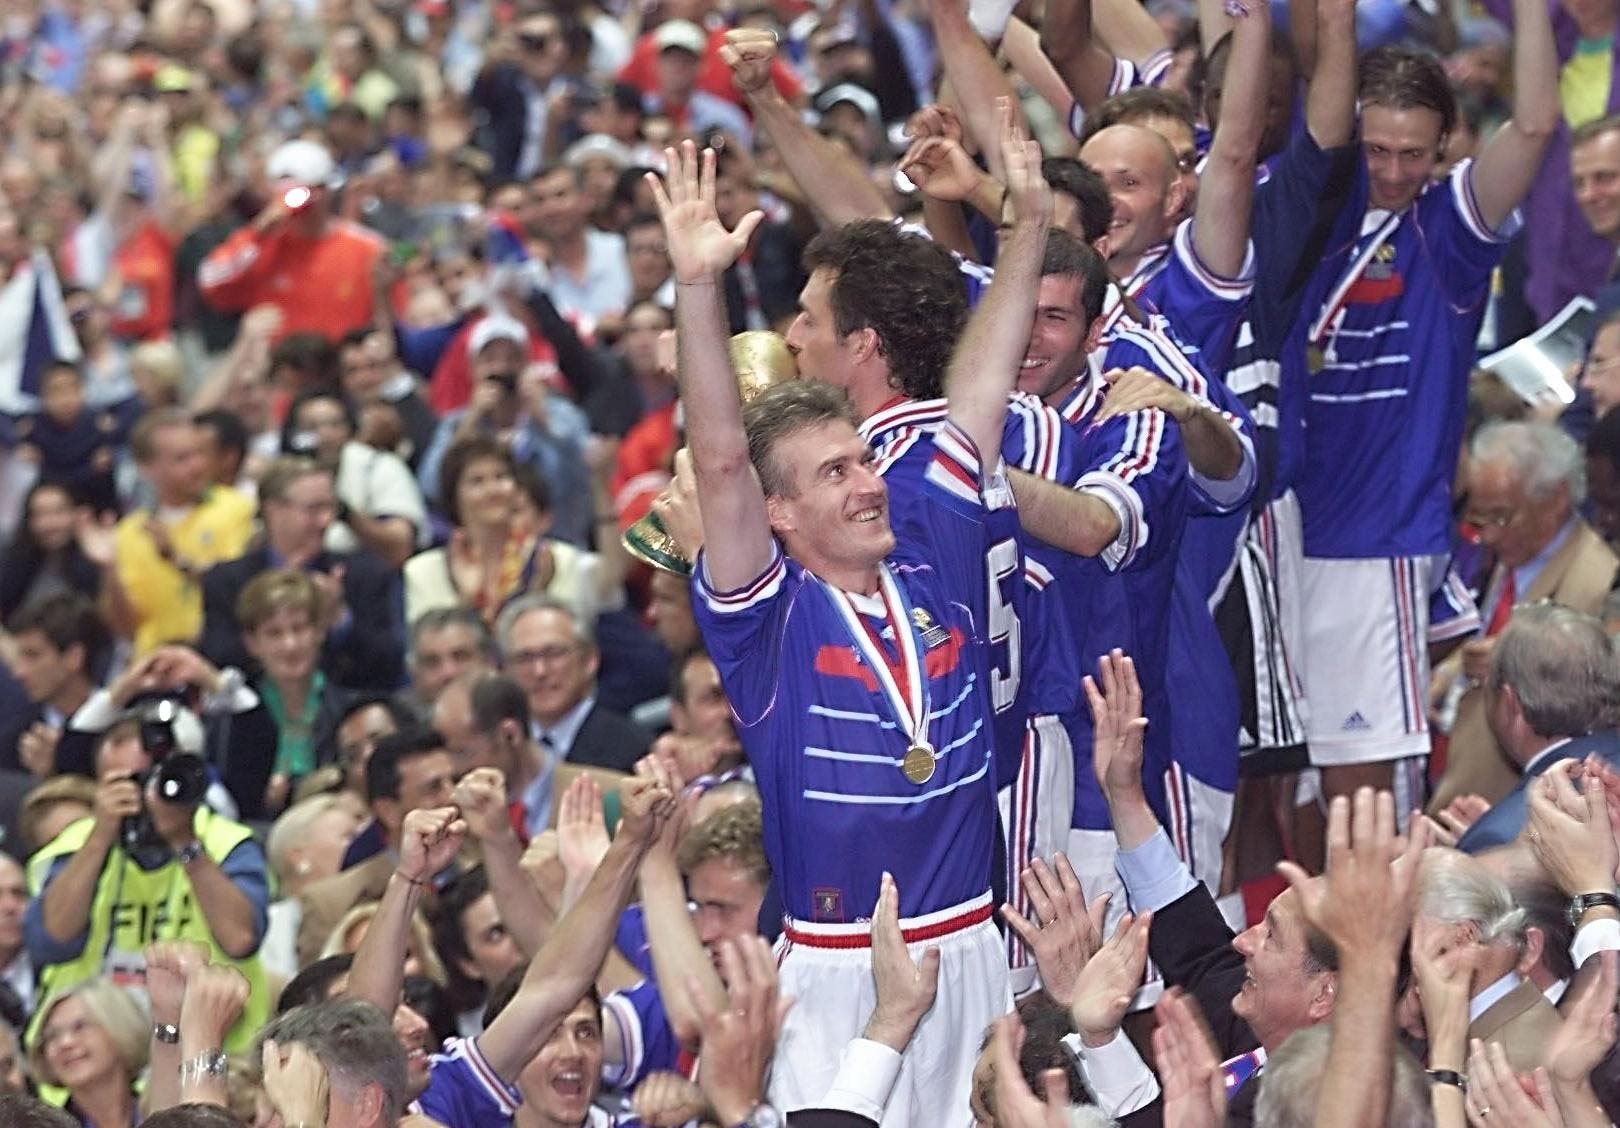 Deschamps and teammates jubilate in the stands after France won the World Cup final at the Stade de France on July 12, 1998. (AFP)